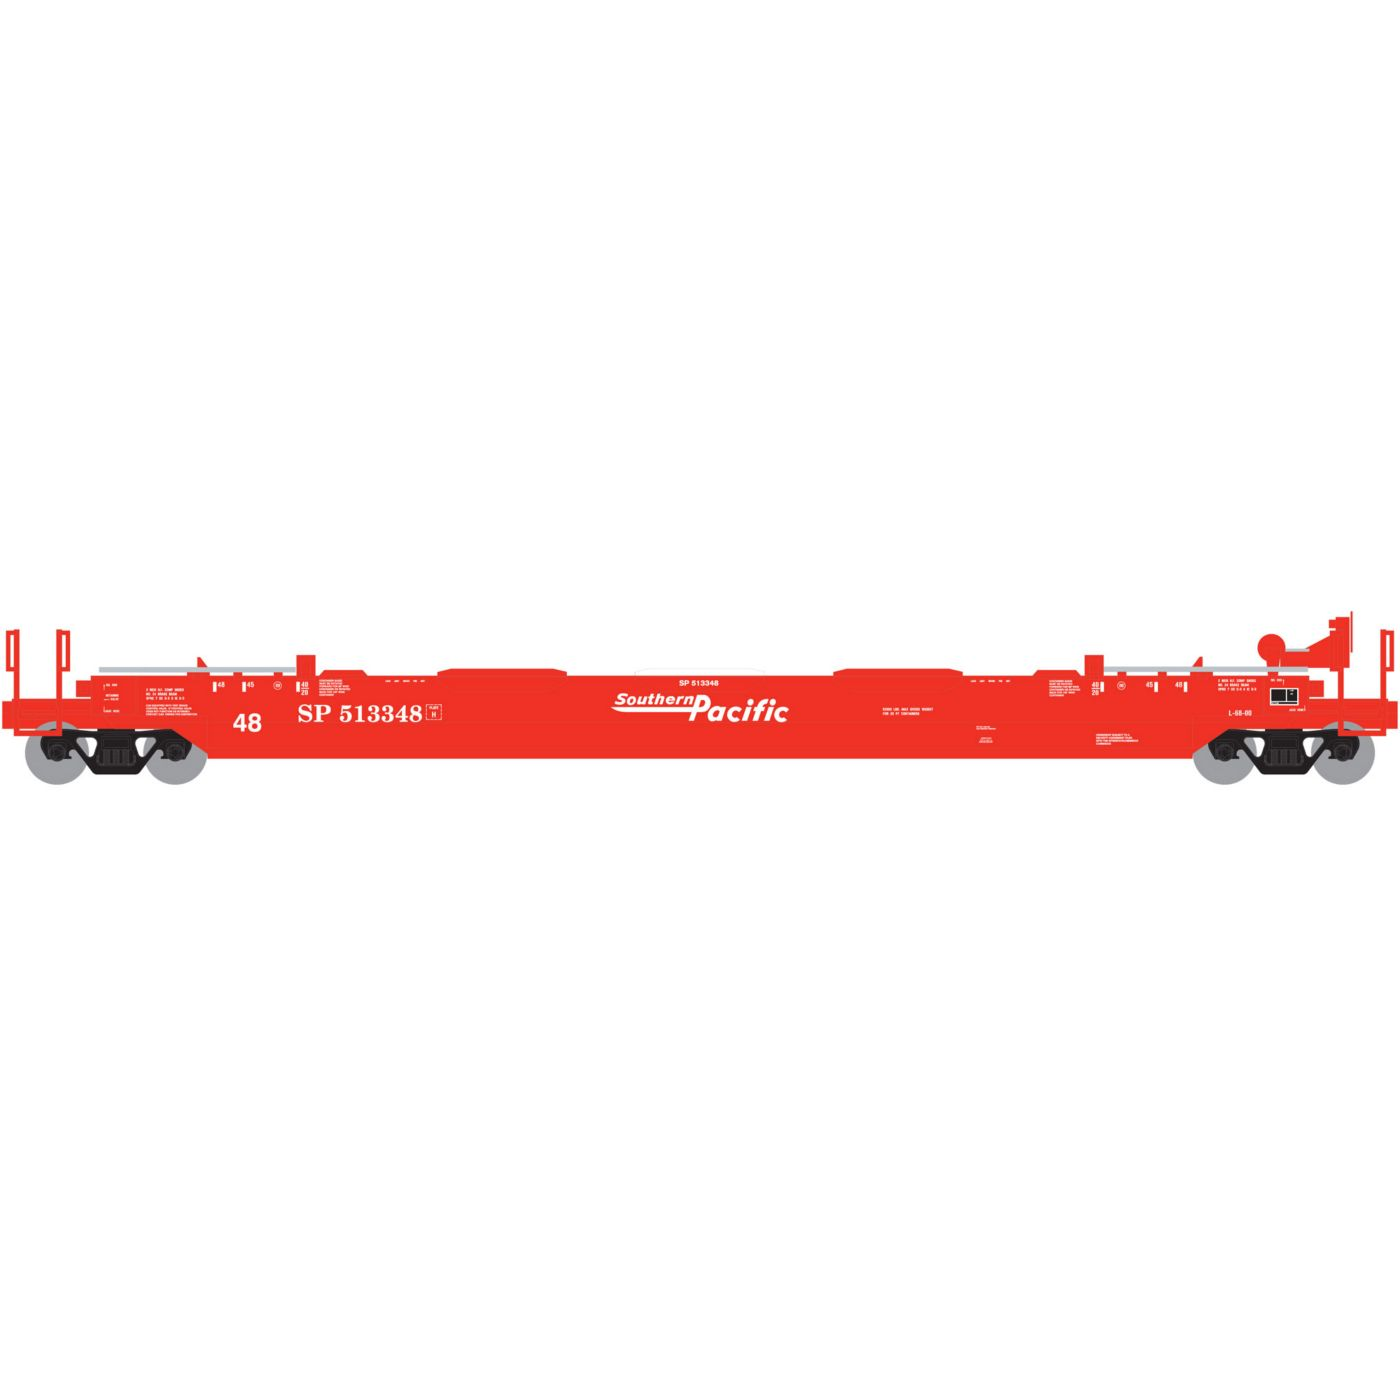 Athearn HO RTR Husky Stack Well TTX Red Logo #56222 ATH5899